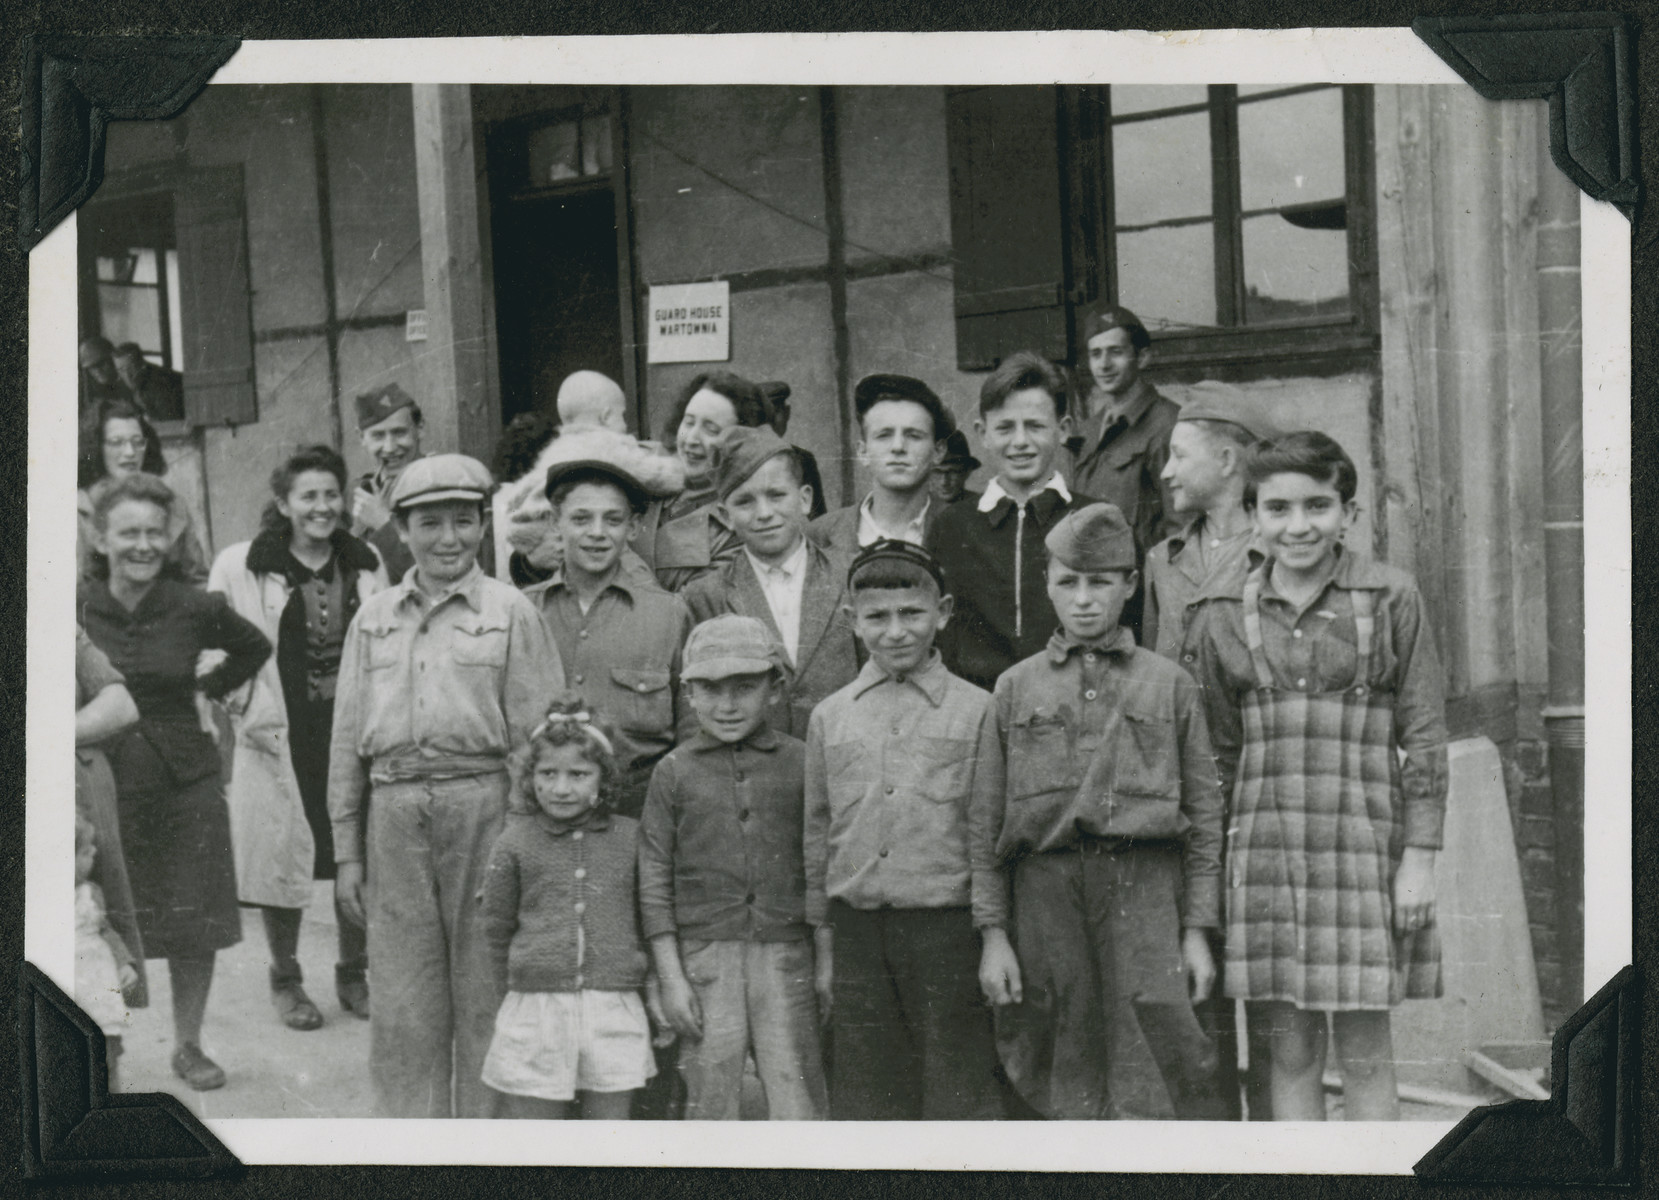 Members of the Frankfurt Jewish GI Council pose with children and women in the Ziegenhain displaced persons camp.  Eliezer Dembitz is at the top left and David Marcus is at the top right.